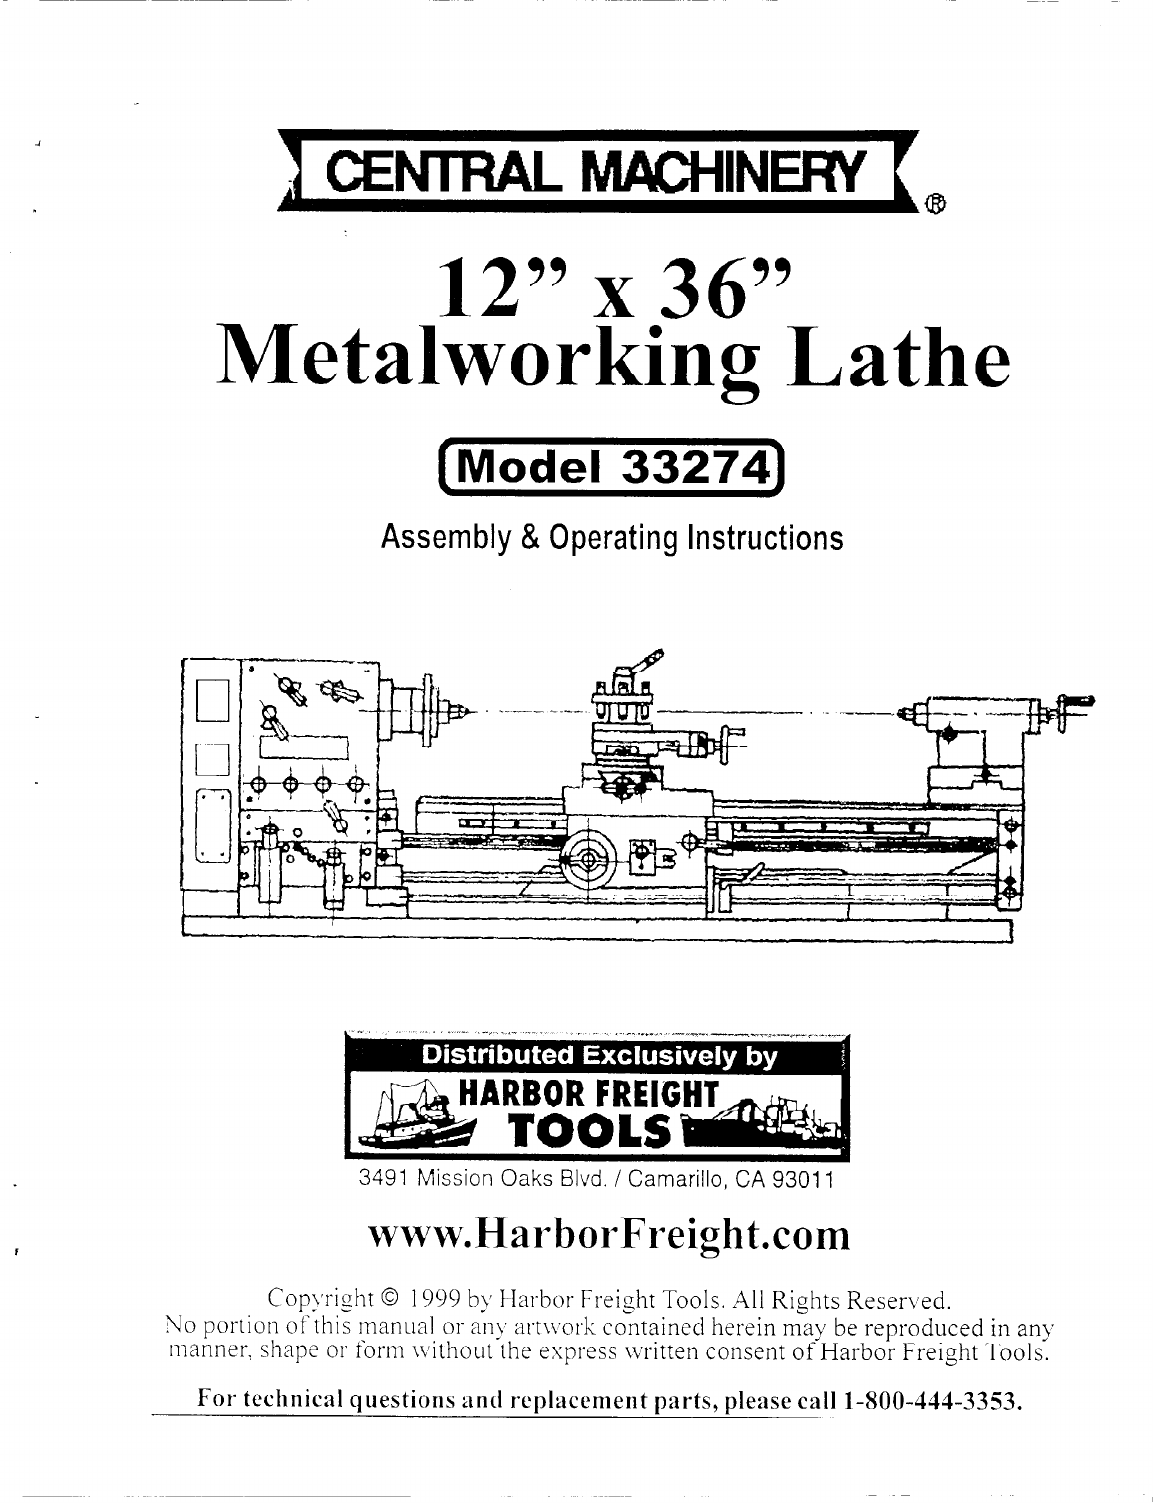 Old Enco Lathe Wiring Diagram Jet Lathe Wiring Diagram